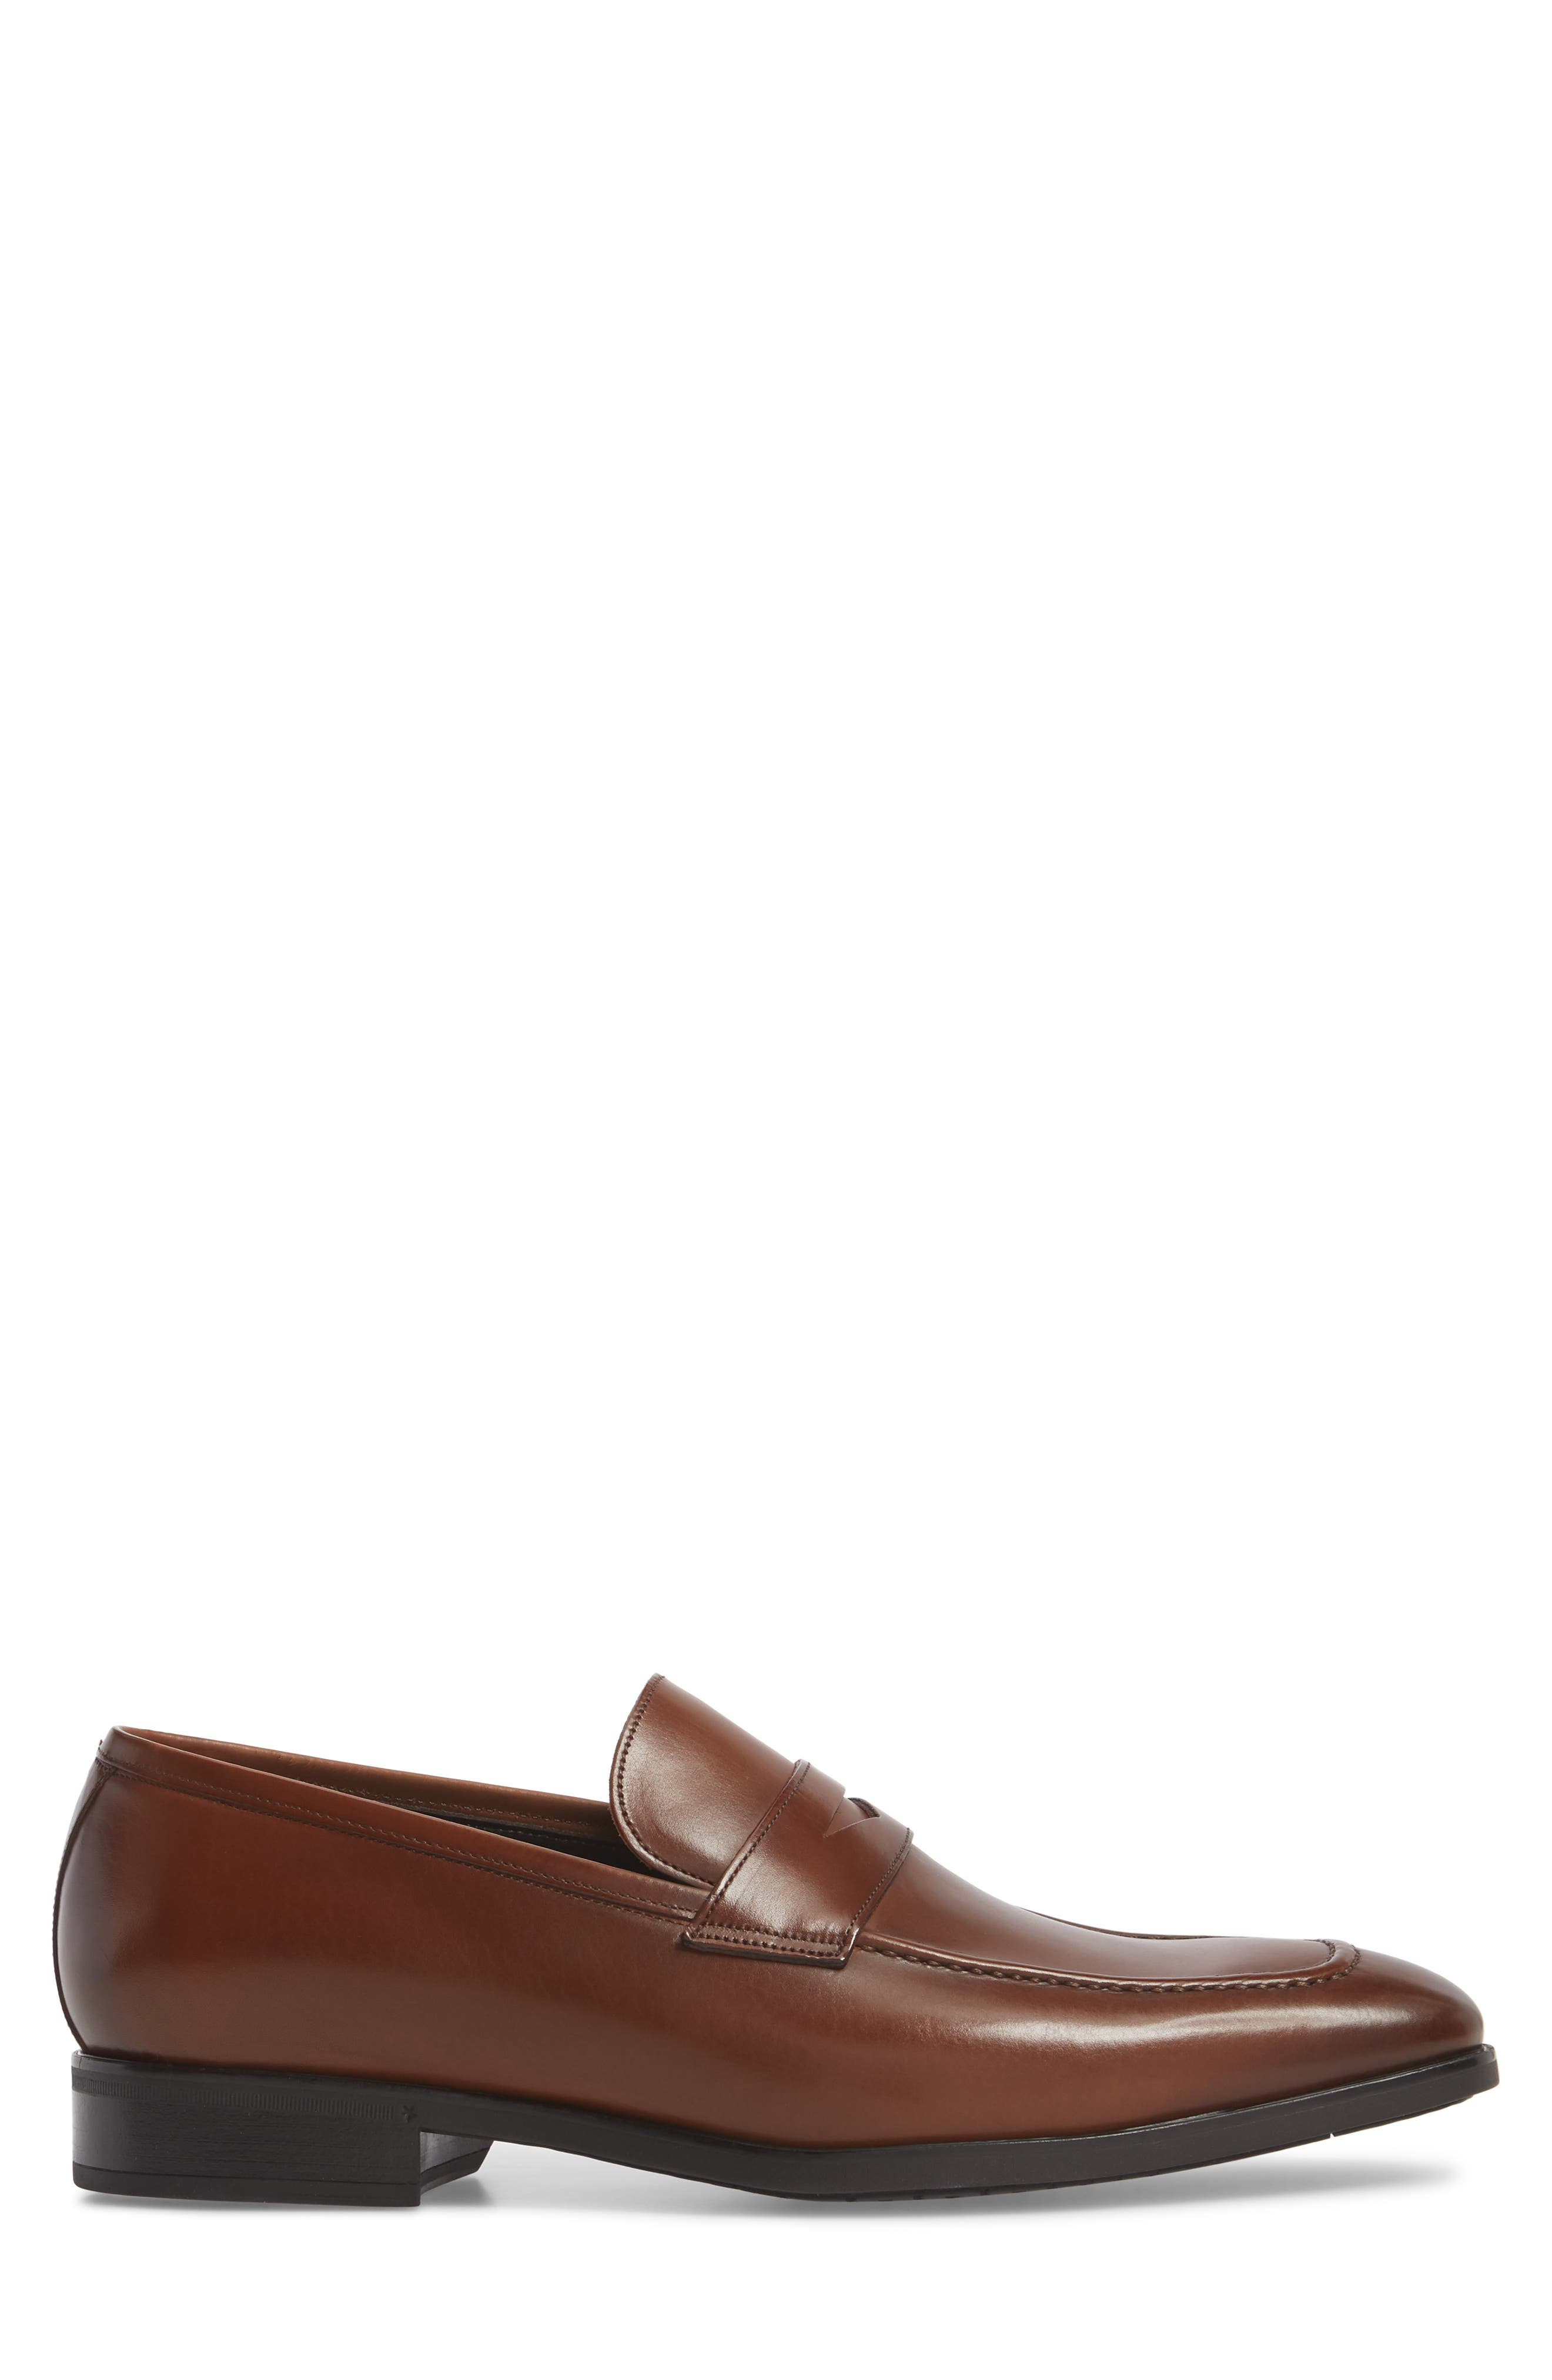 Raleigh Apron Toe Penny Loafer,                             Alternate thumbnail 3, color,                             BROWN LEATHER